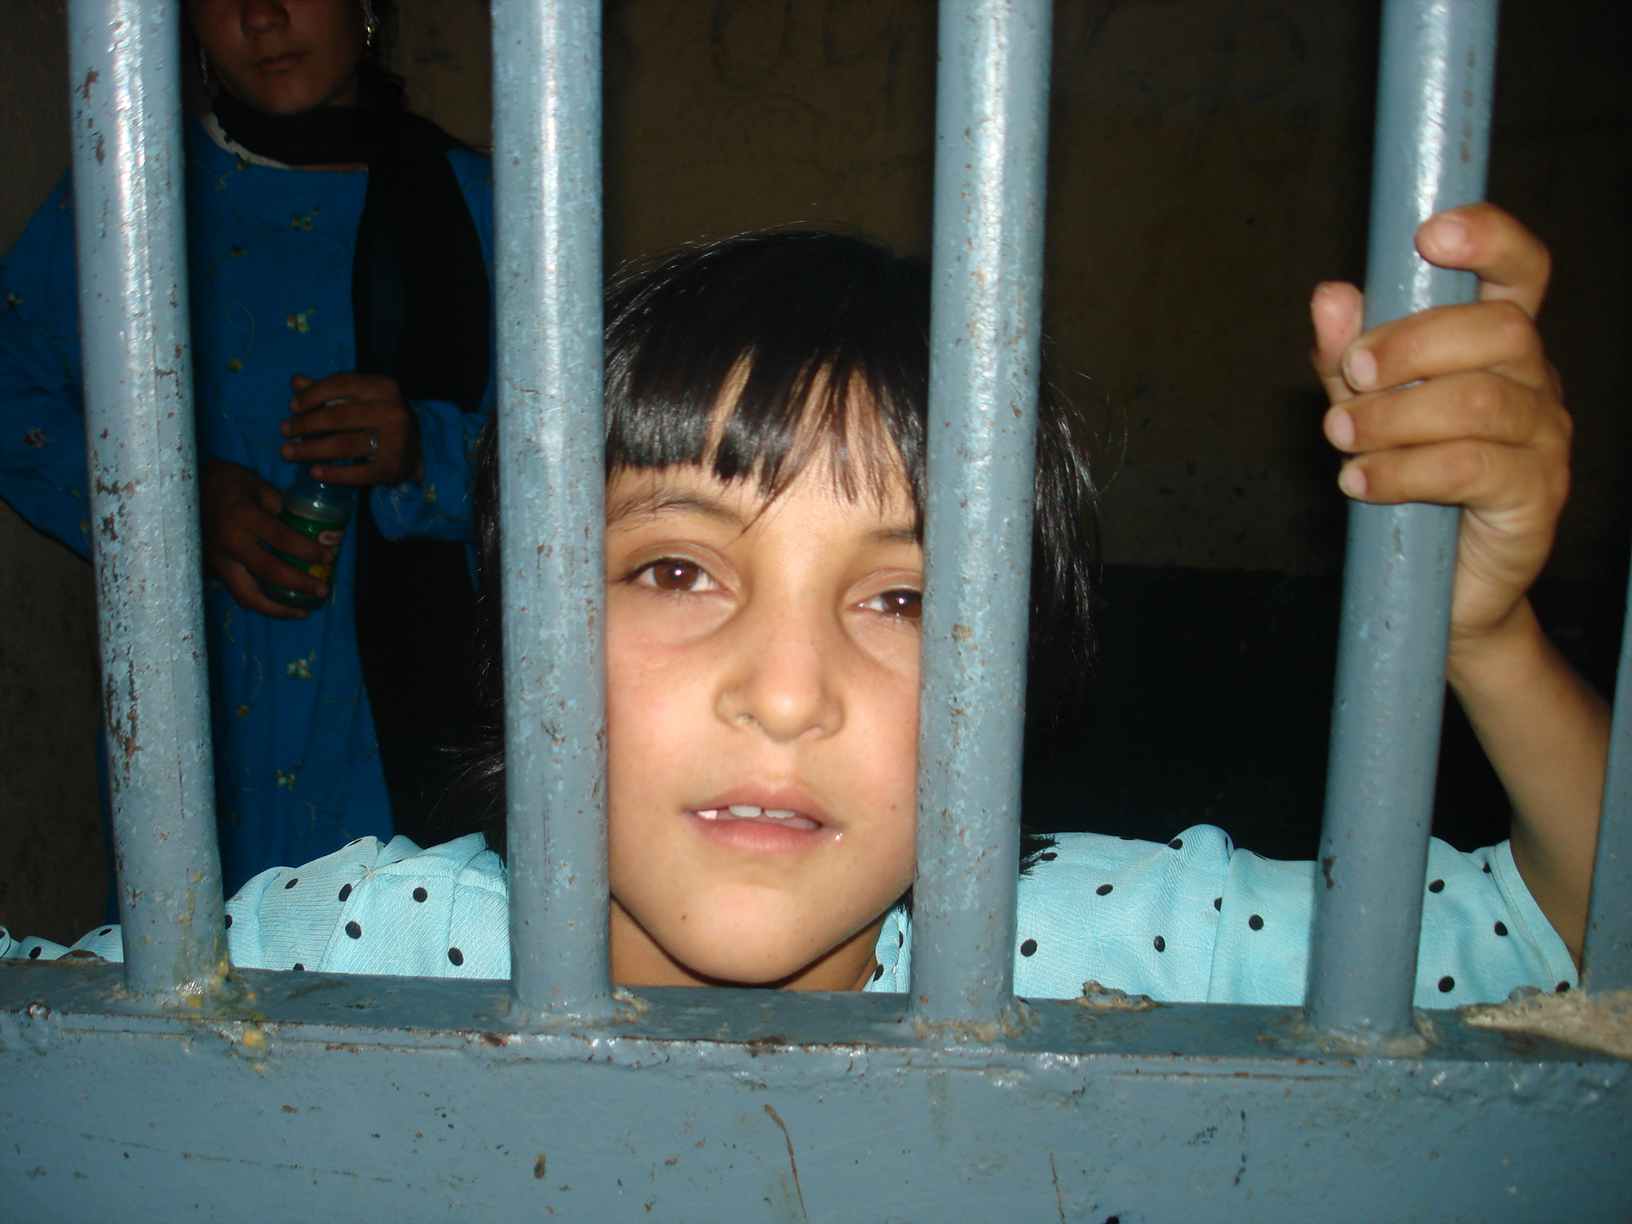 An Afghan girl living with her imprisoned mother in the Pul-e Charkhi prison in Kabul in 2007. More than 48 percent of children in detention said they were tortured, according to AIHRC.